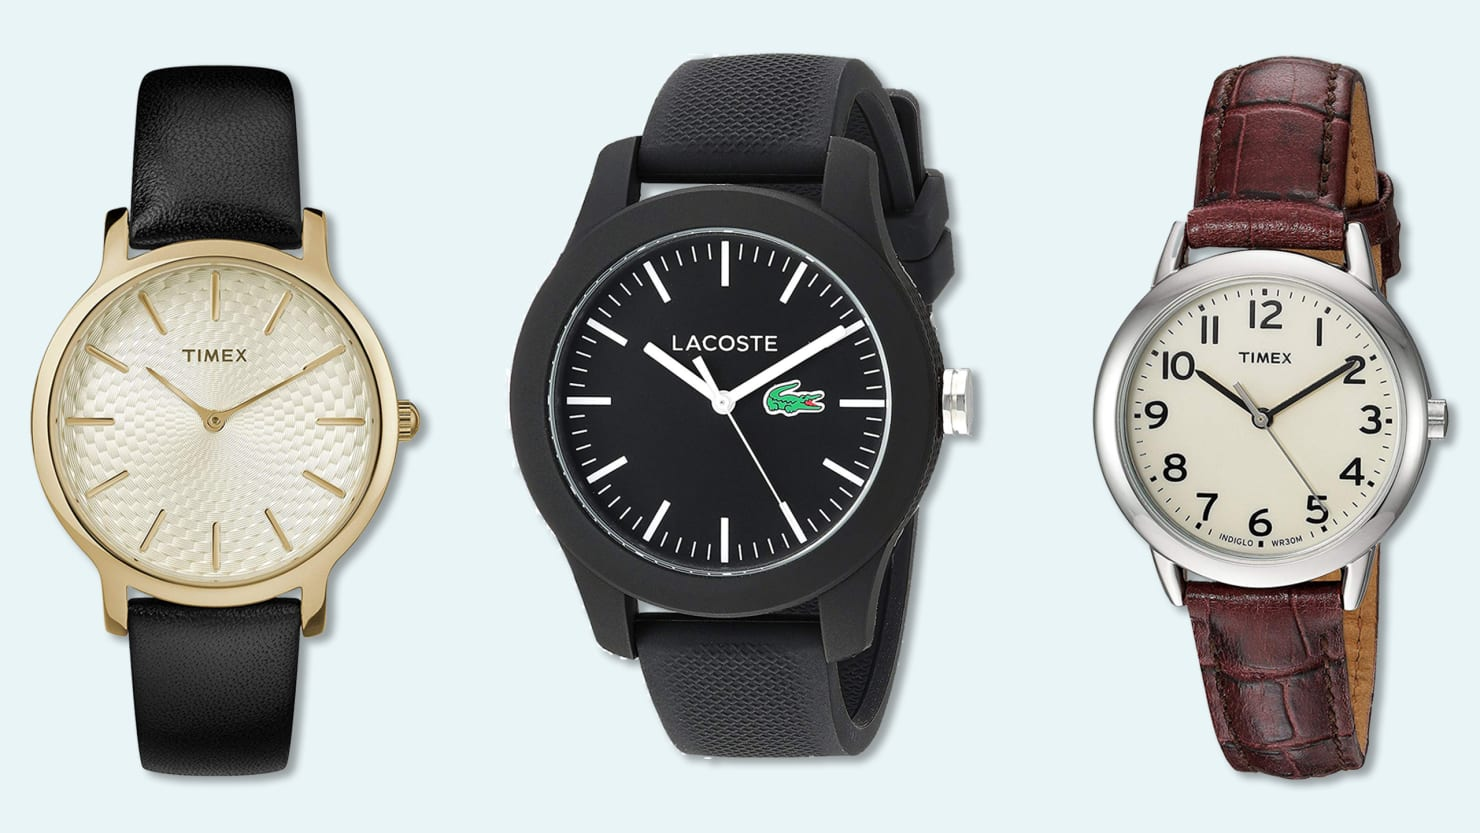 Today Only, Save Up to 50% On Top Brand Watches Like Lacoste, TIMEX, and INVICTA